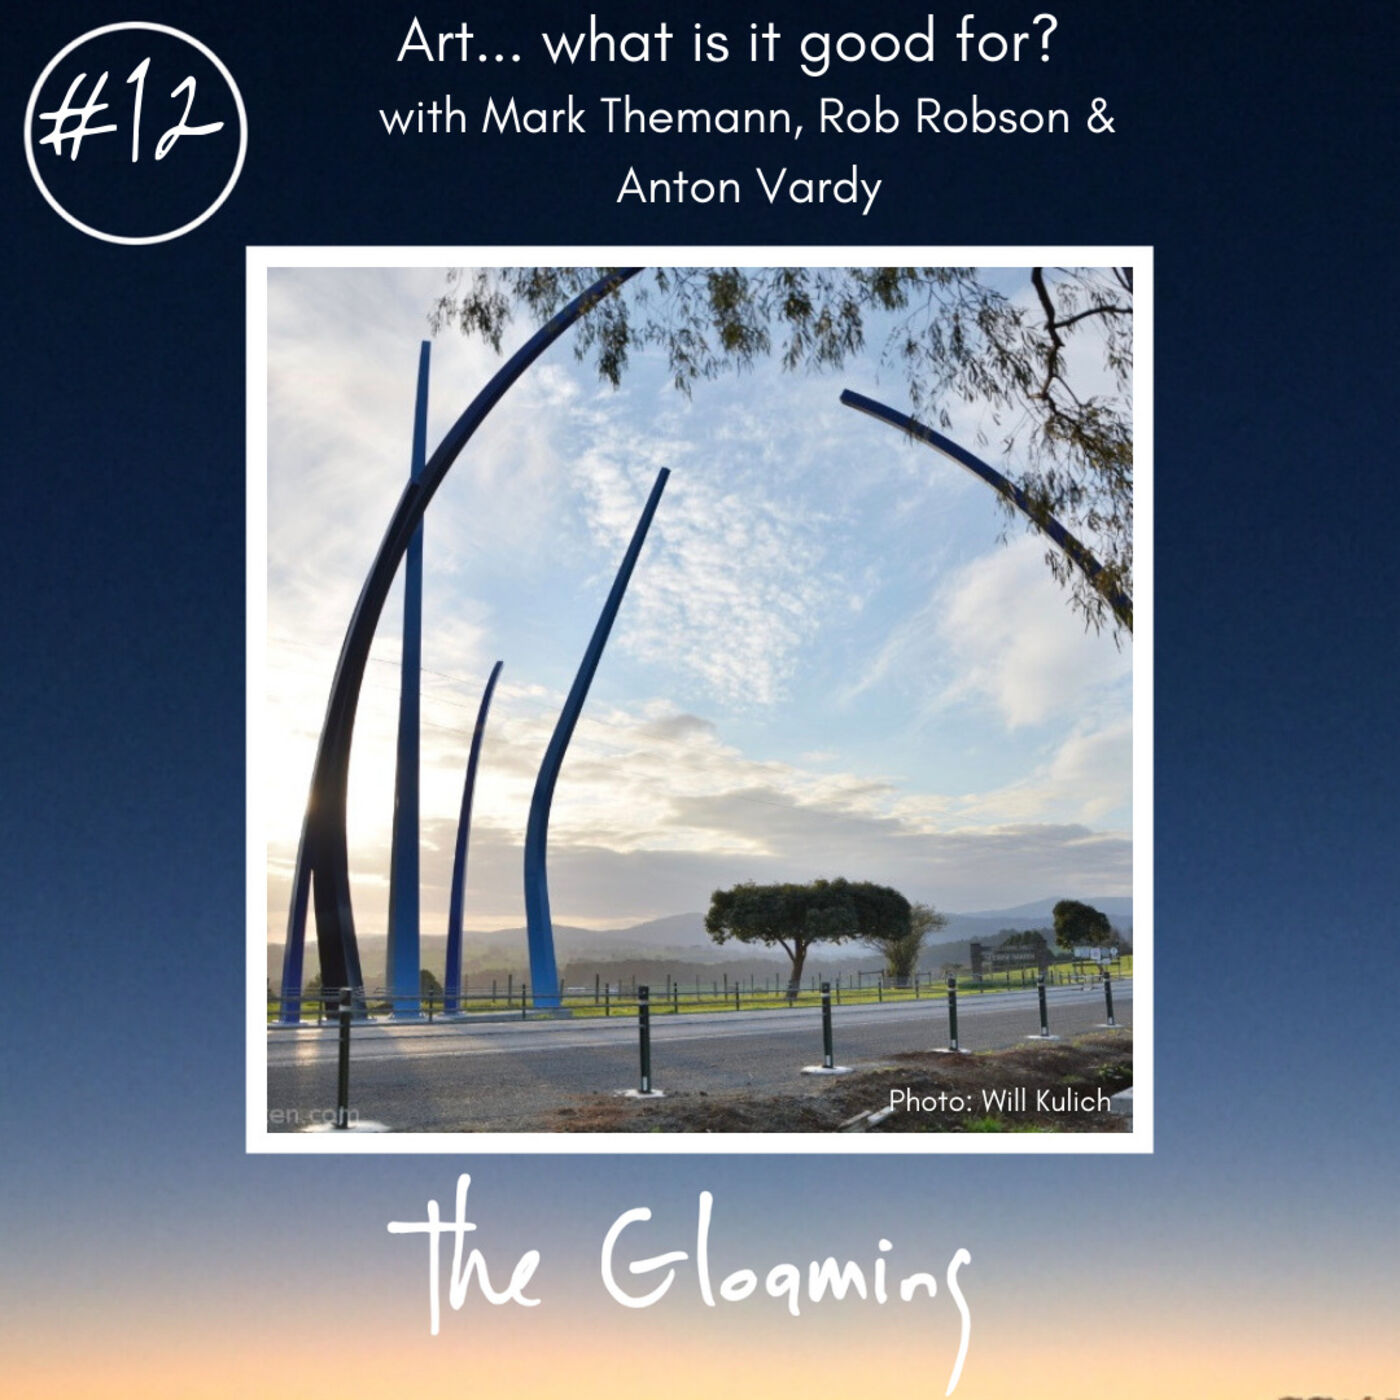 TG12: Art... what is it good for? (with Mark Themann, Rob Robson & Anton Vardy)